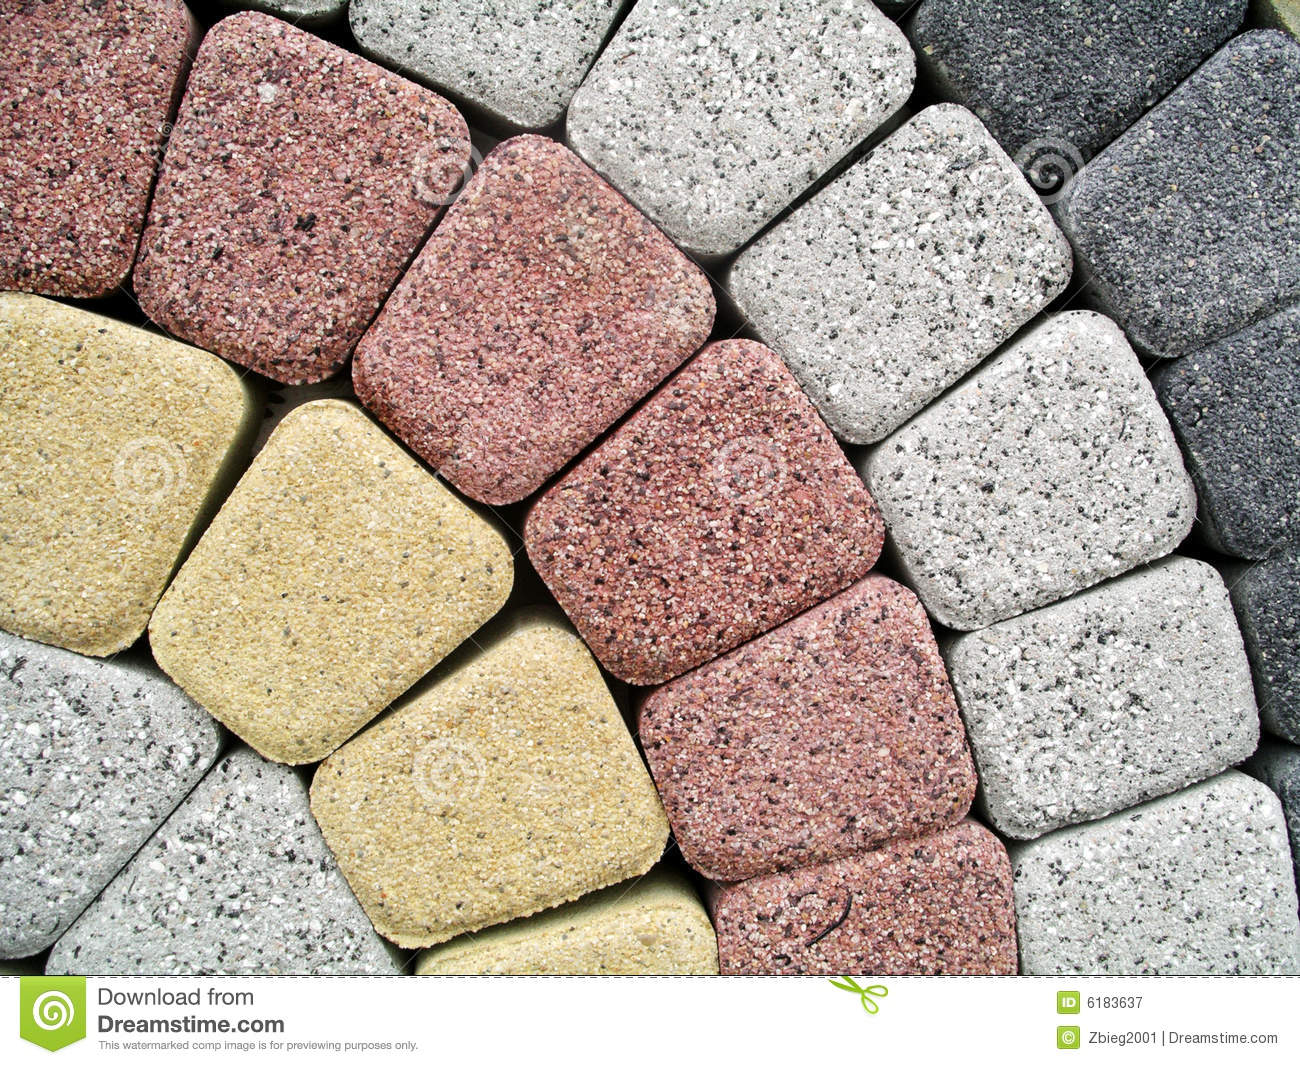 Paving stones royalty free stock photography image 6183637